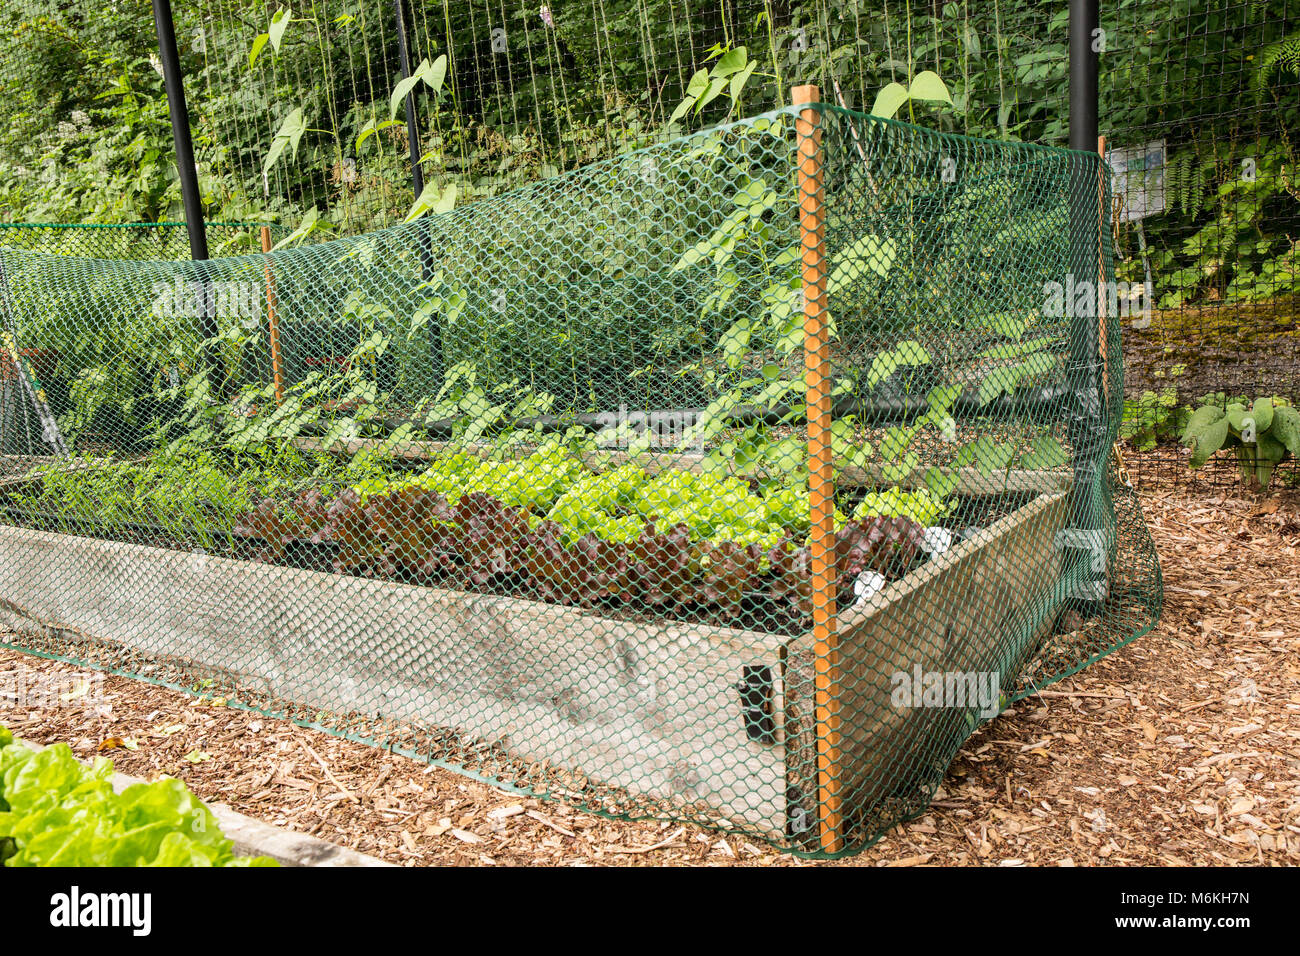 Removable plastic garden fence to deter rabbits from eating the lettuce and other plants in a community garden. - Stock Image